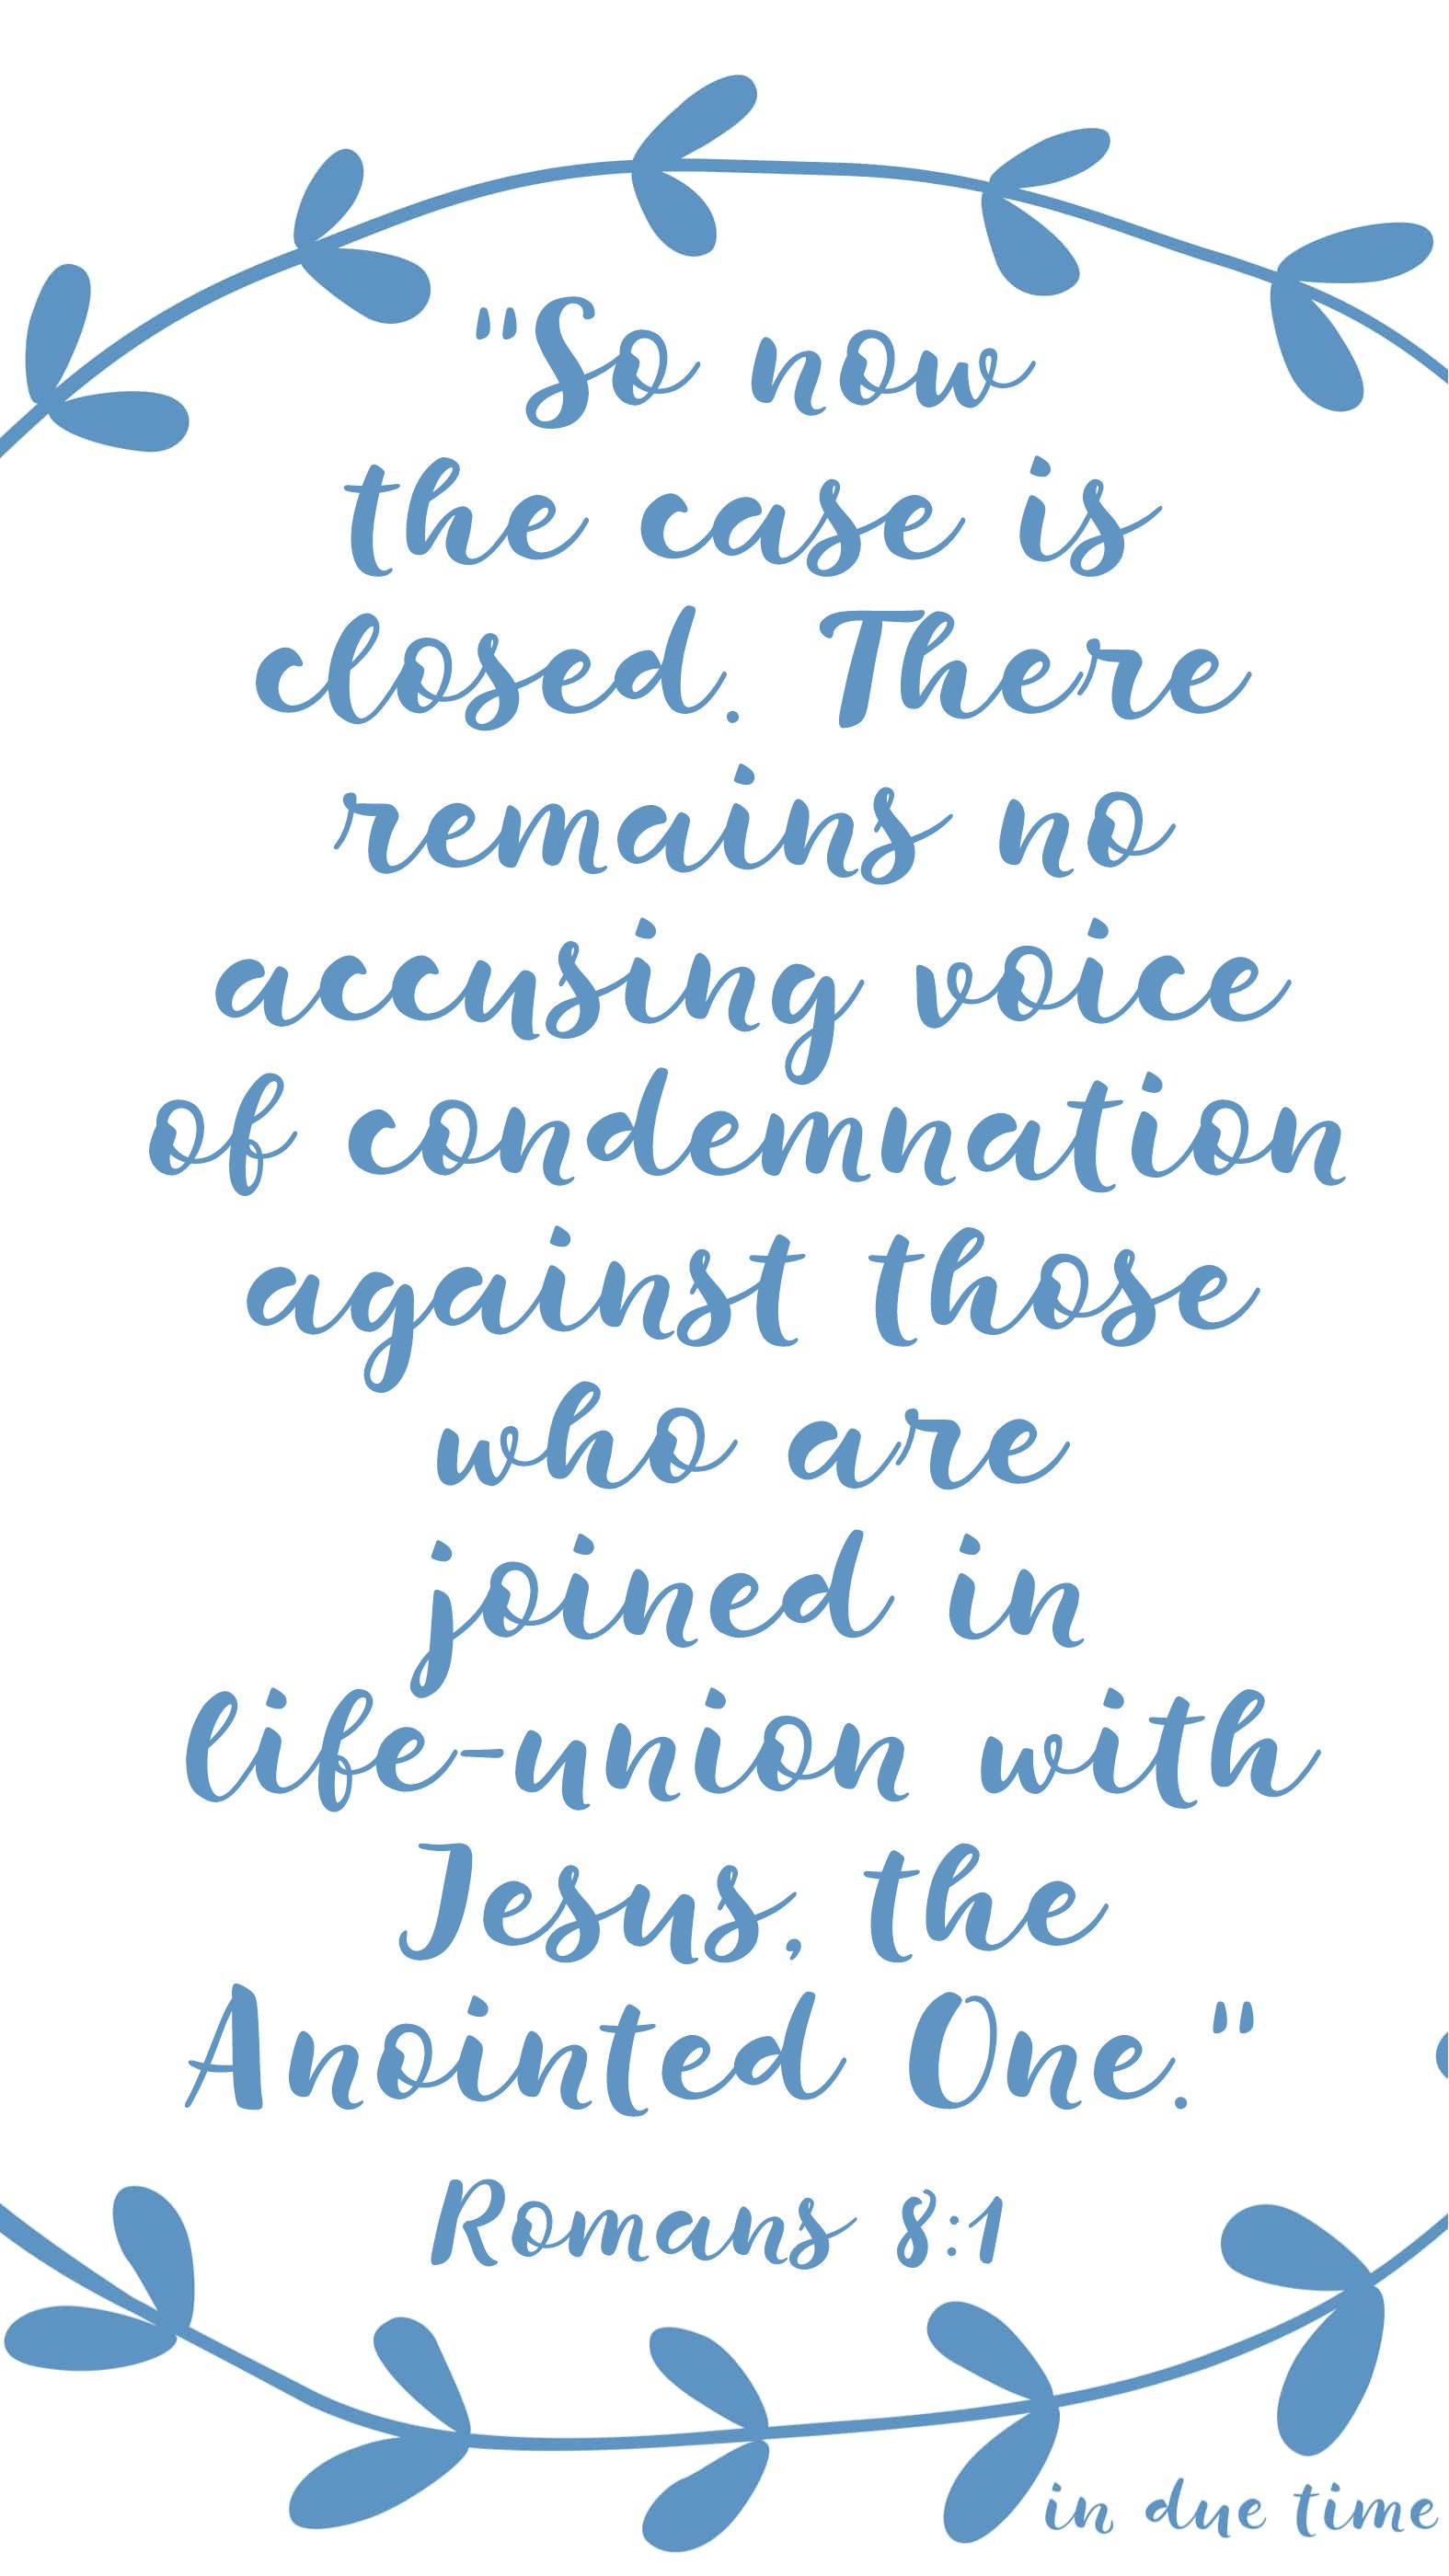 Romans 8 - there is no condmentation.